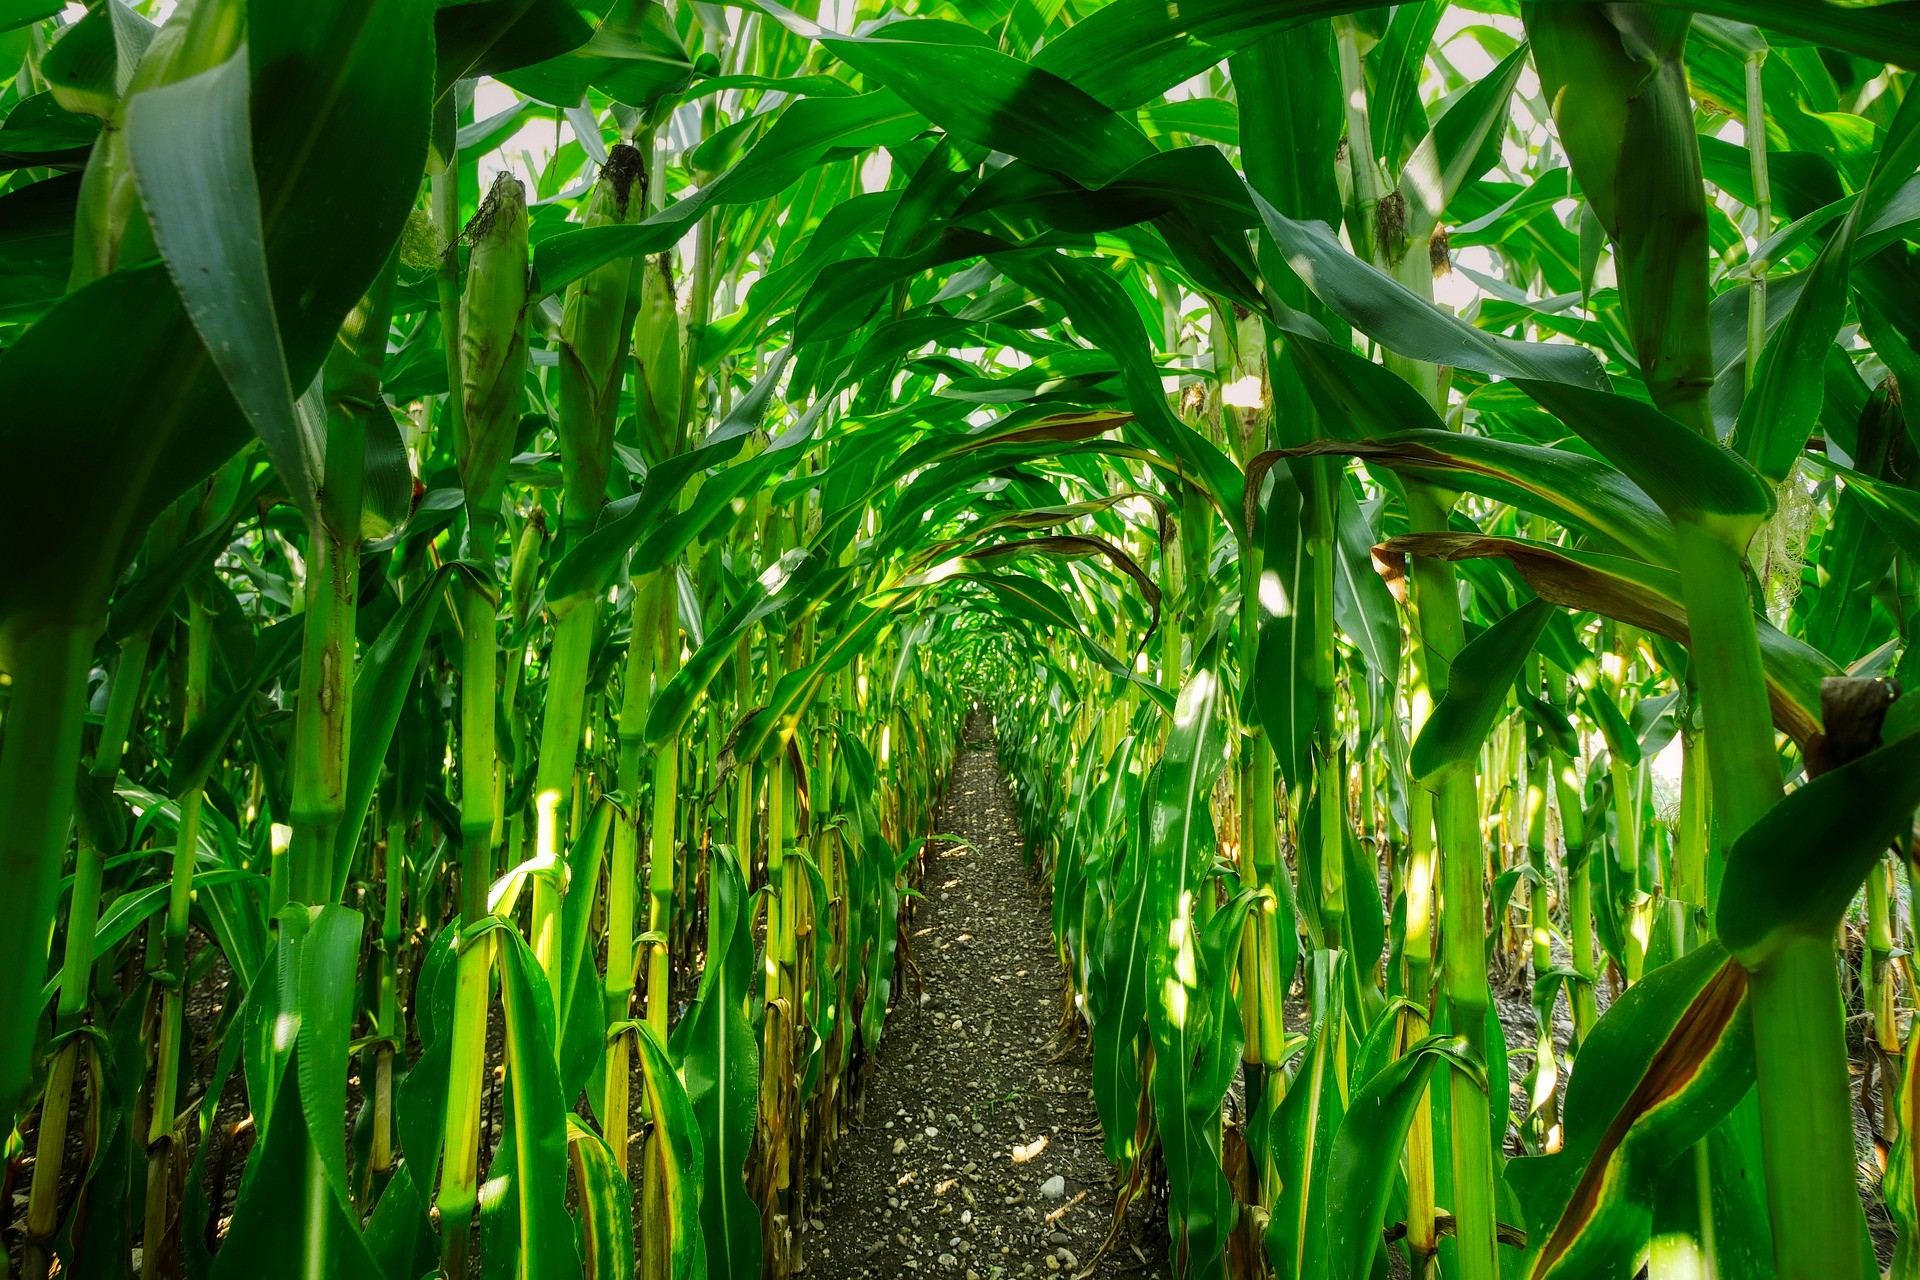 Biorefineries can produce renewable aviation fuel from maize. A research project was initiated to investigate how this process can be optimised.